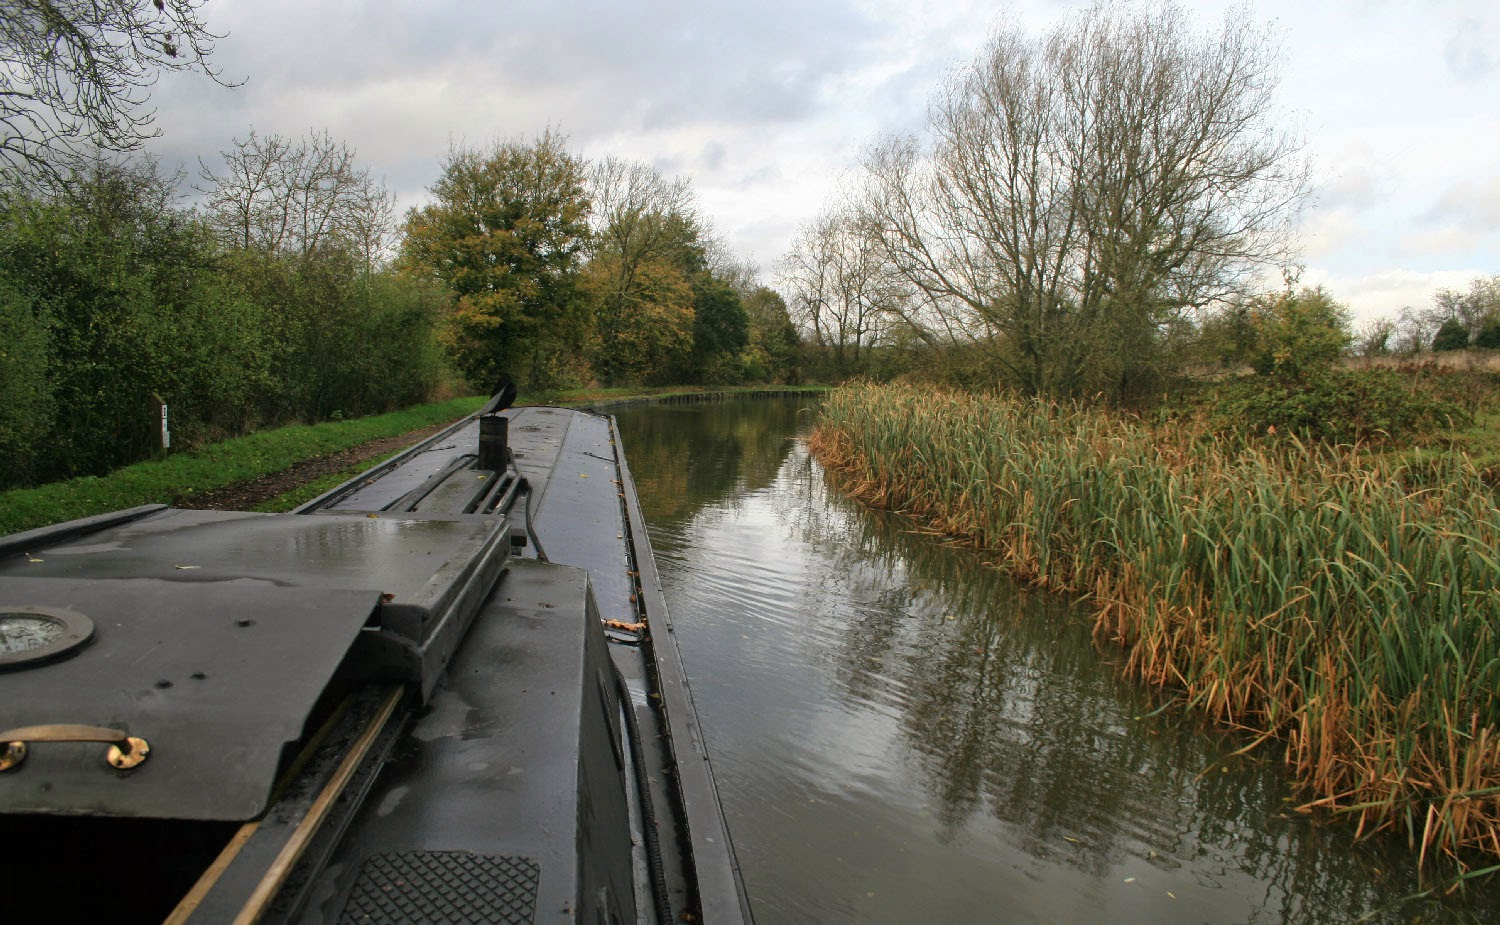 Serenely progressing along the gorgeous canal